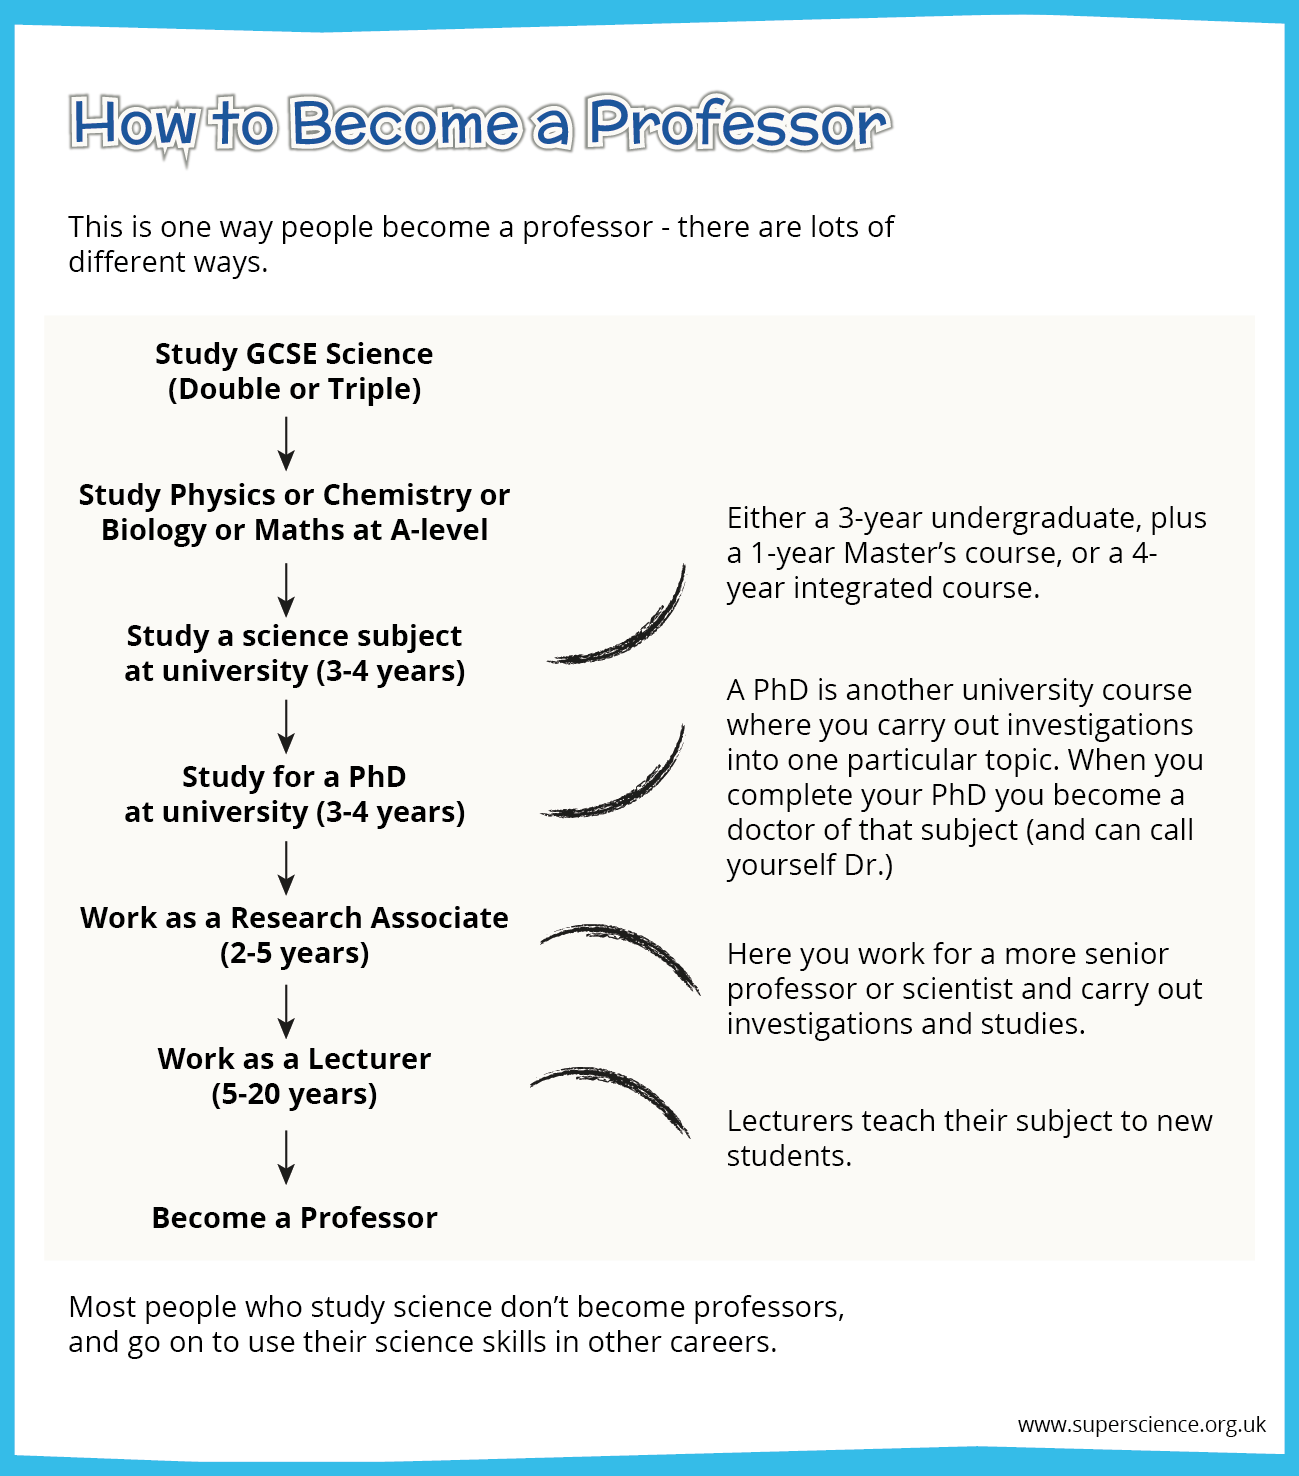 Graphic showing the steps from studying GCSE science to becoming a professor